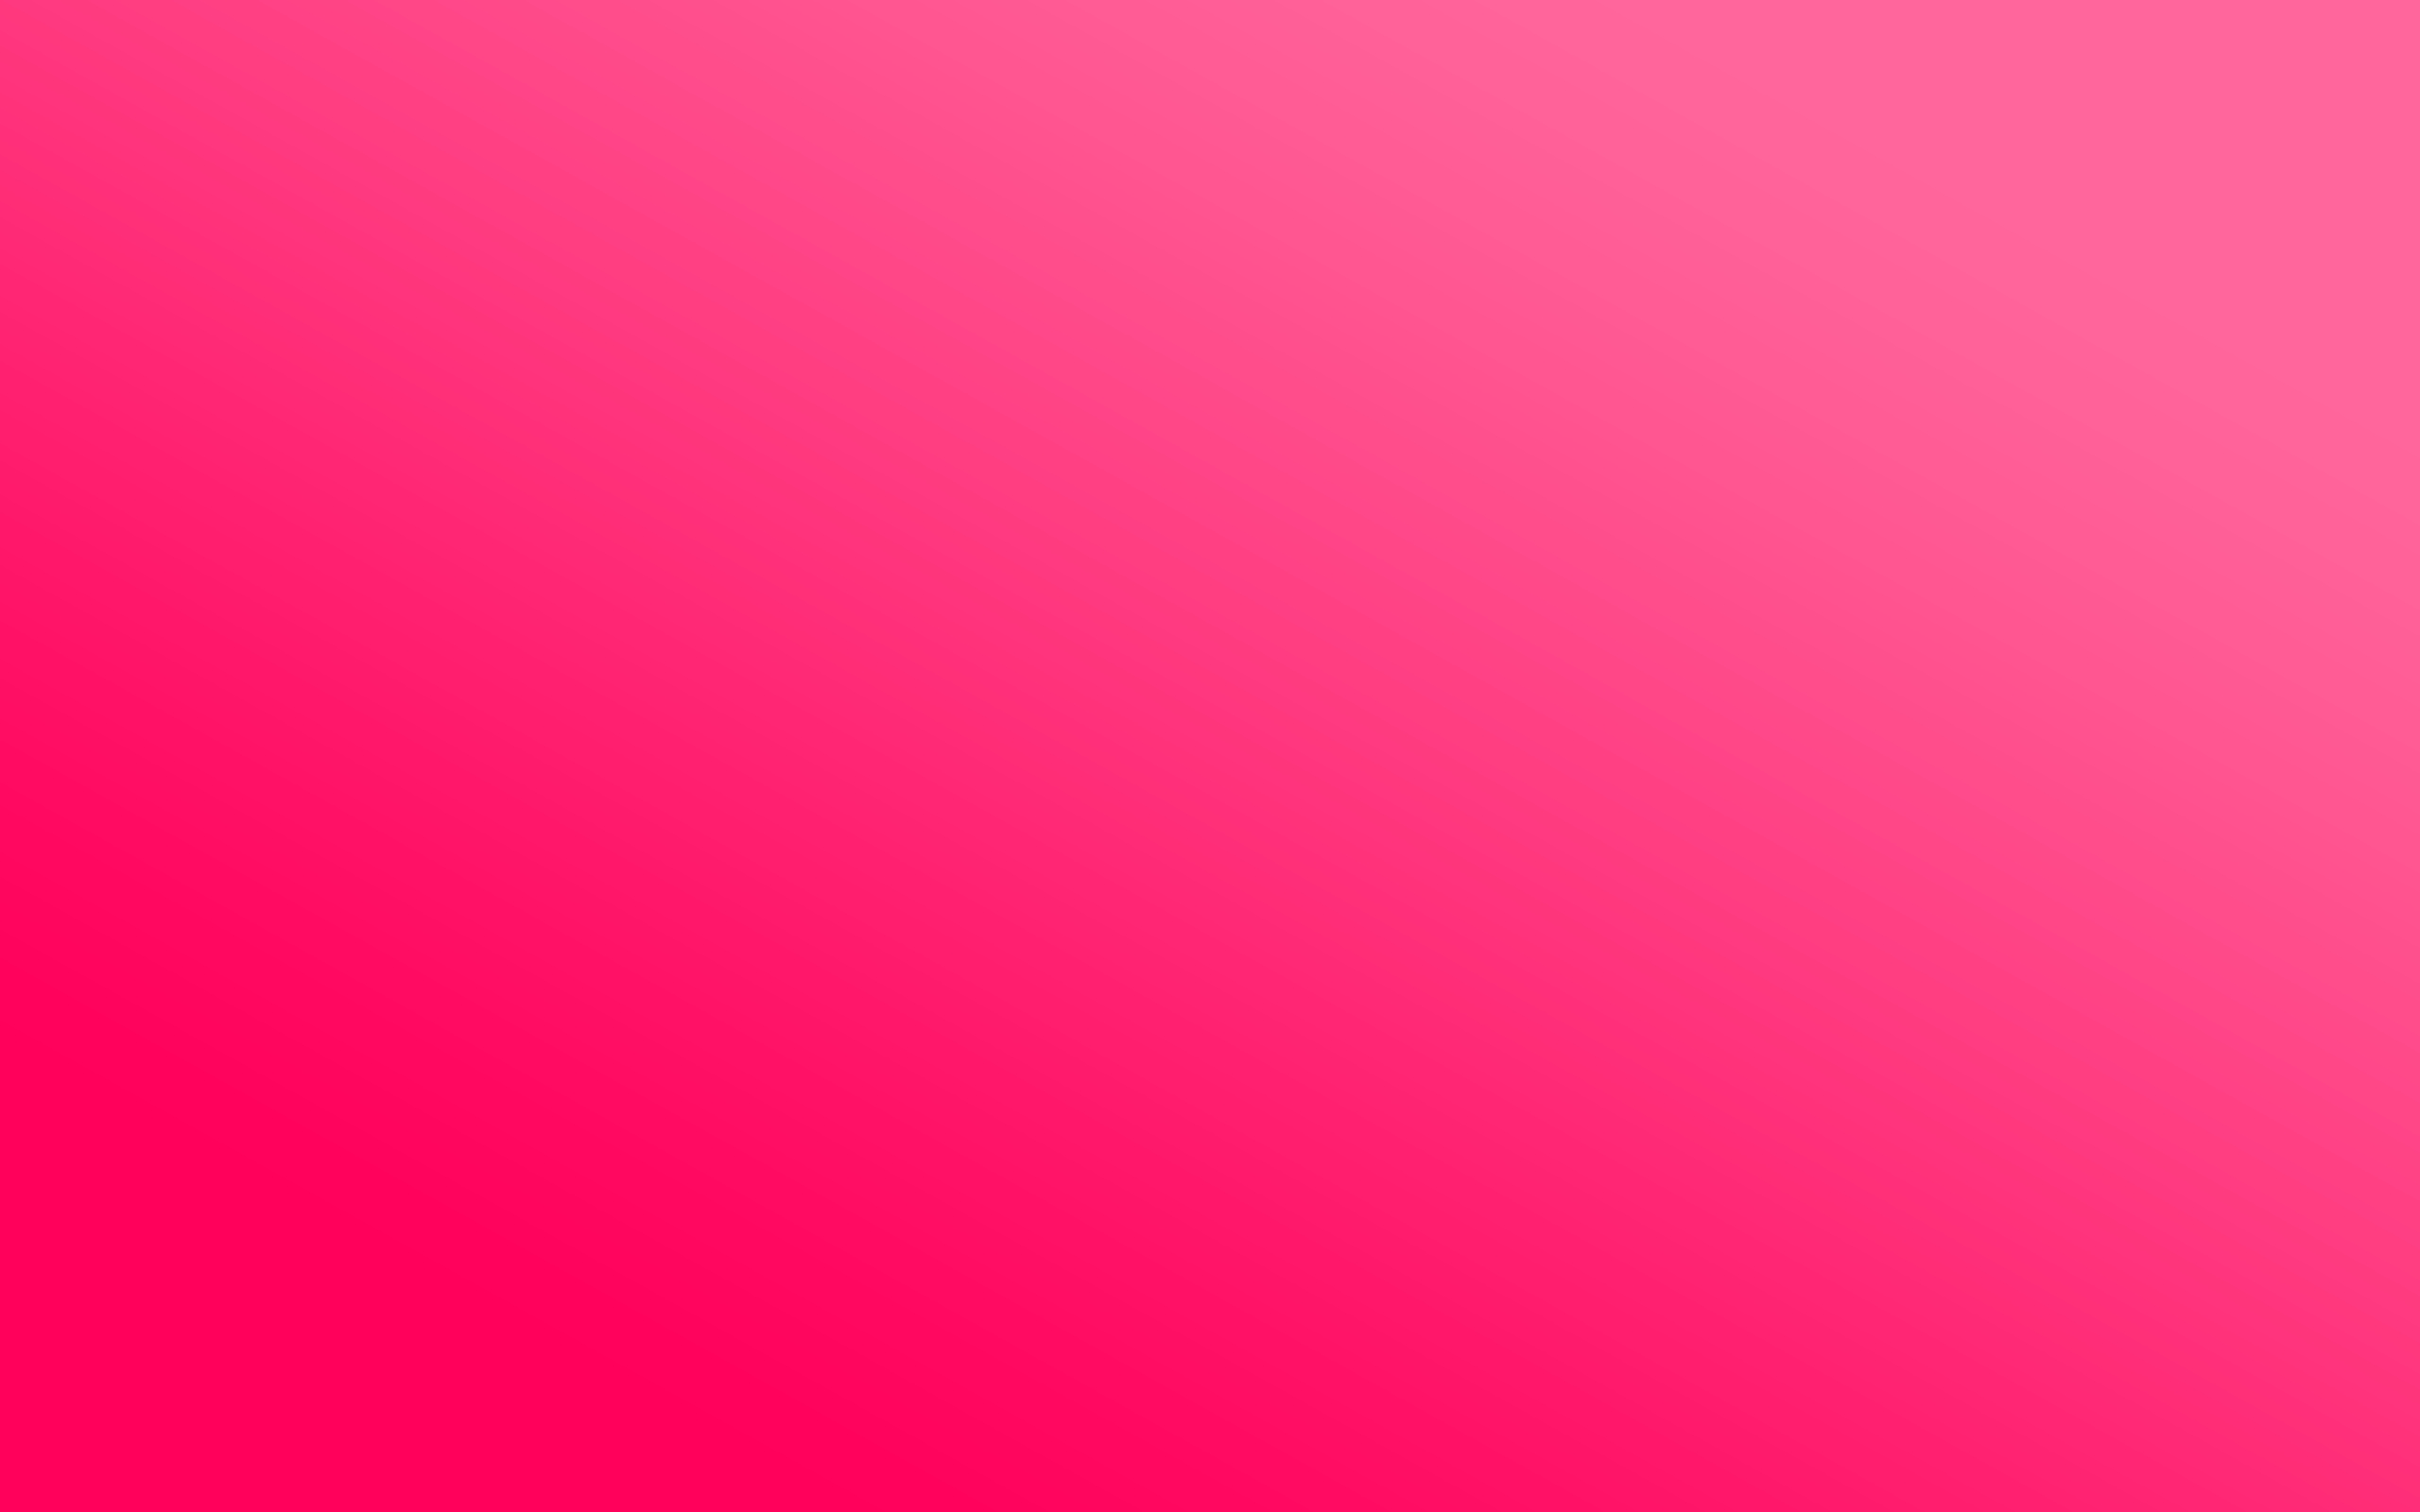 pink solid color wallpaper 870499 solid blue background 891299 solid 2560x1600